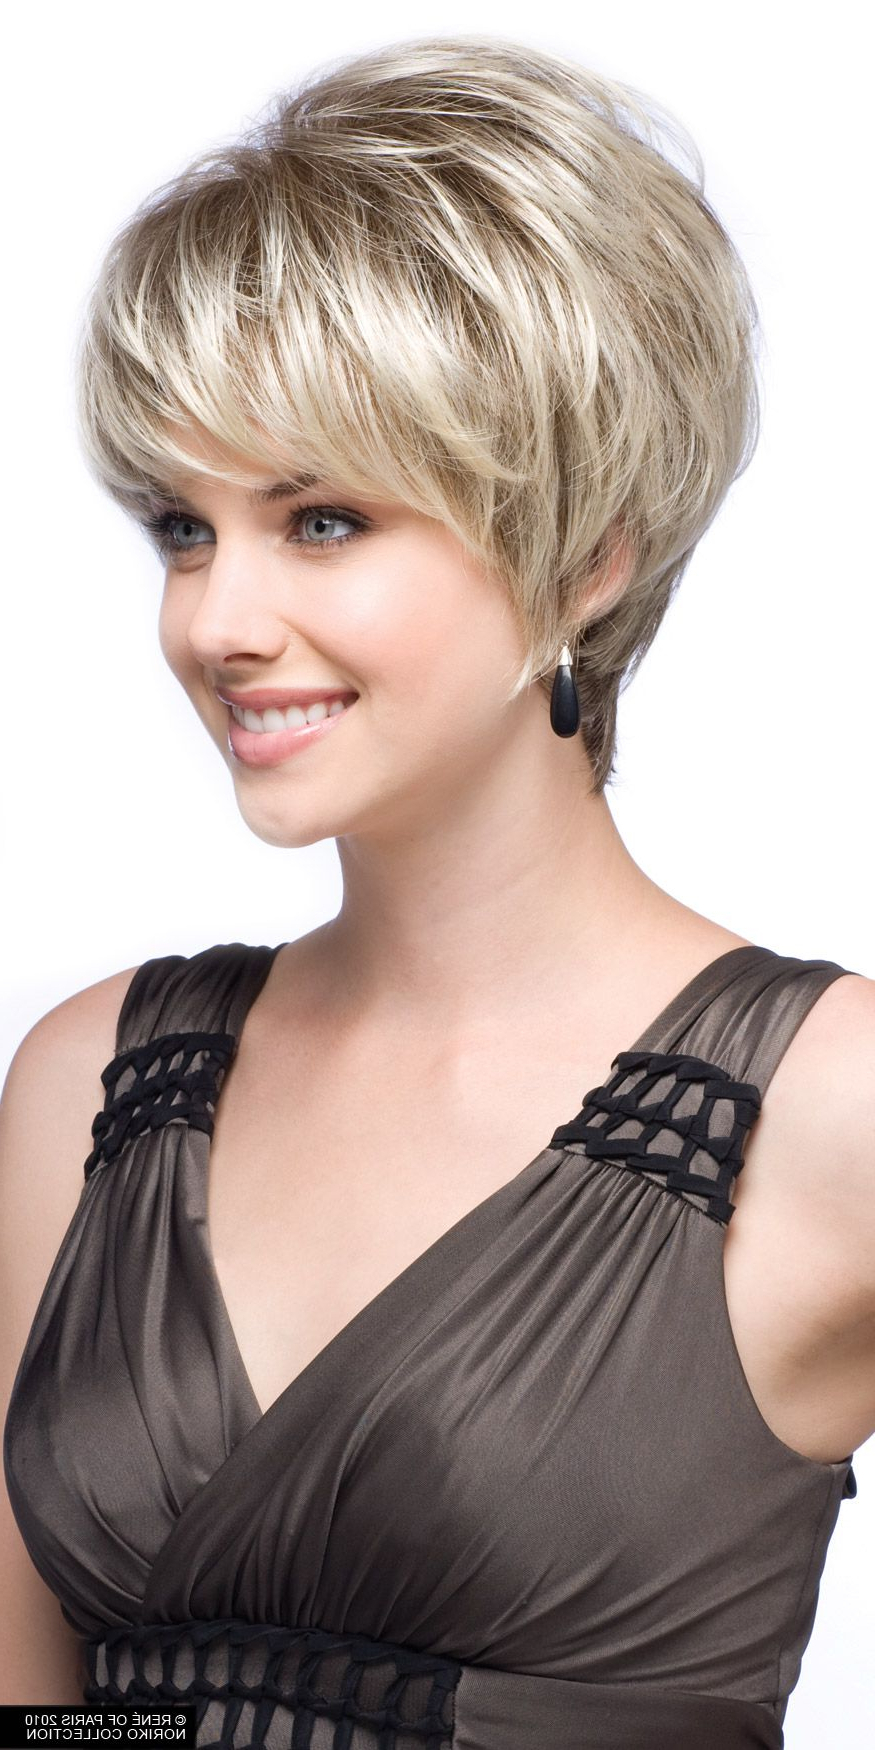 Pinrascal On Smiles In 2018 | Pinterest | Short Hair Styles With Wedge Short Haircuts (View 17 of 25)